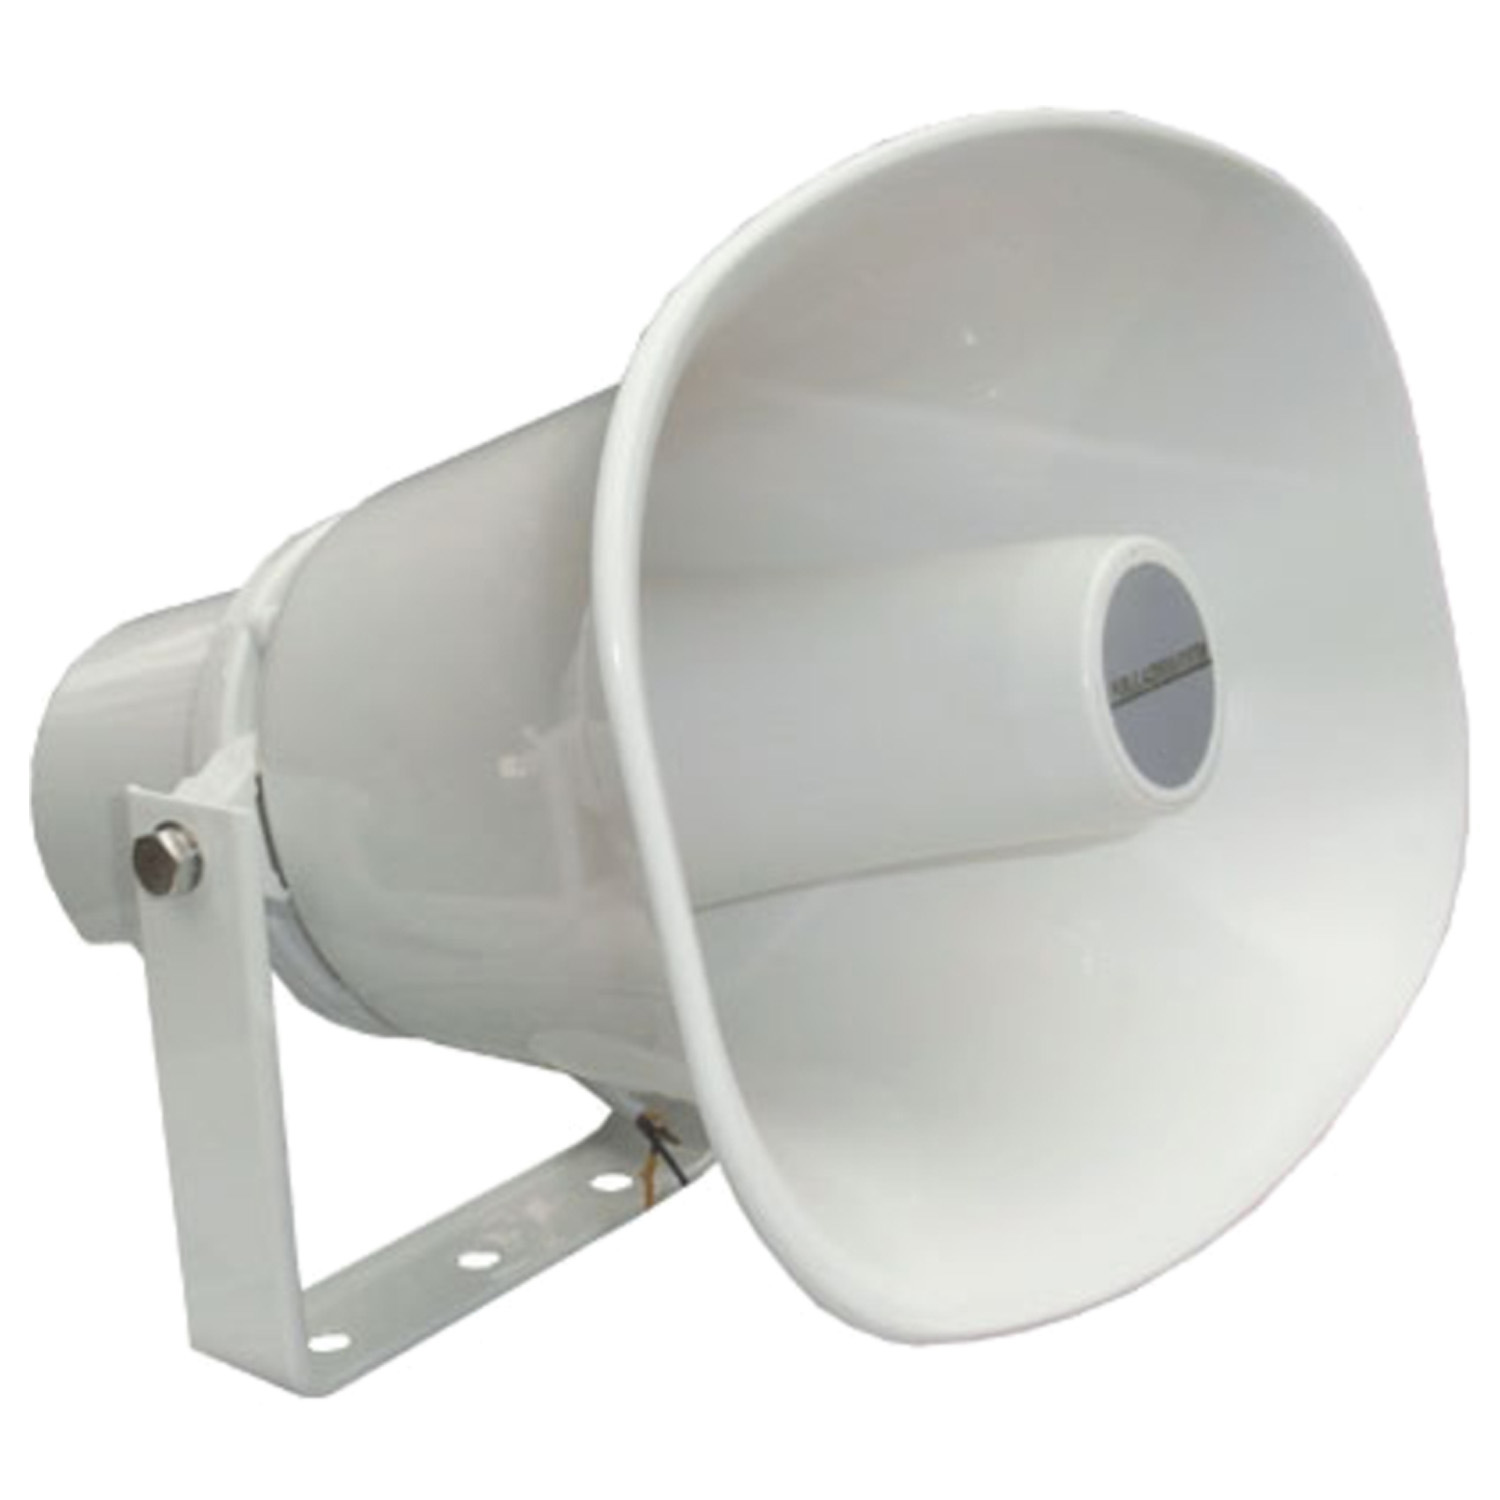 Public Address System Horn Speaker Sp-8008, Sp-8009, Sp-8010